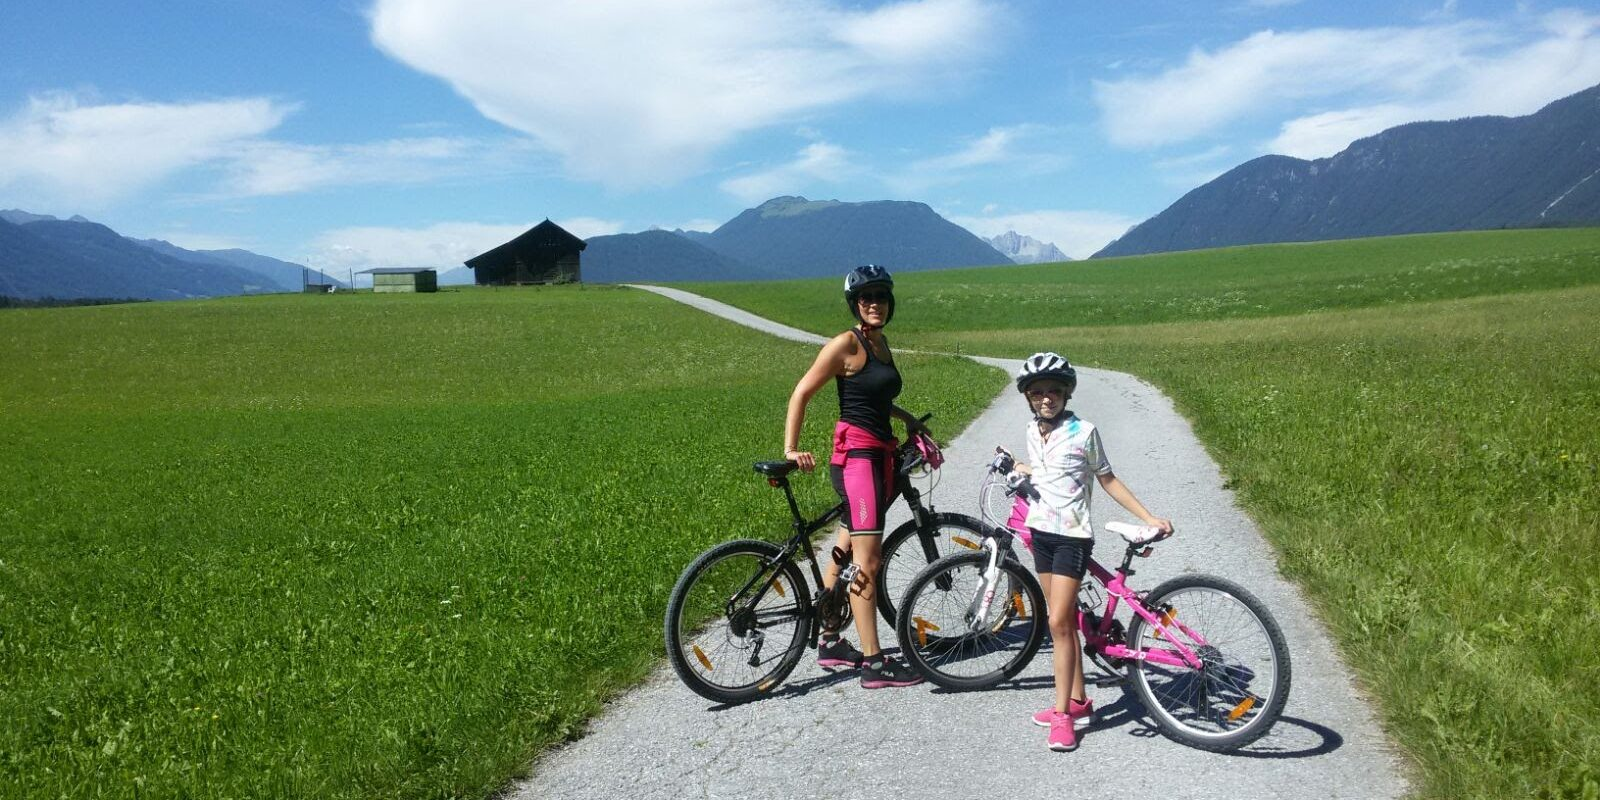 Familienradtour am Sonnenplateau Mieming